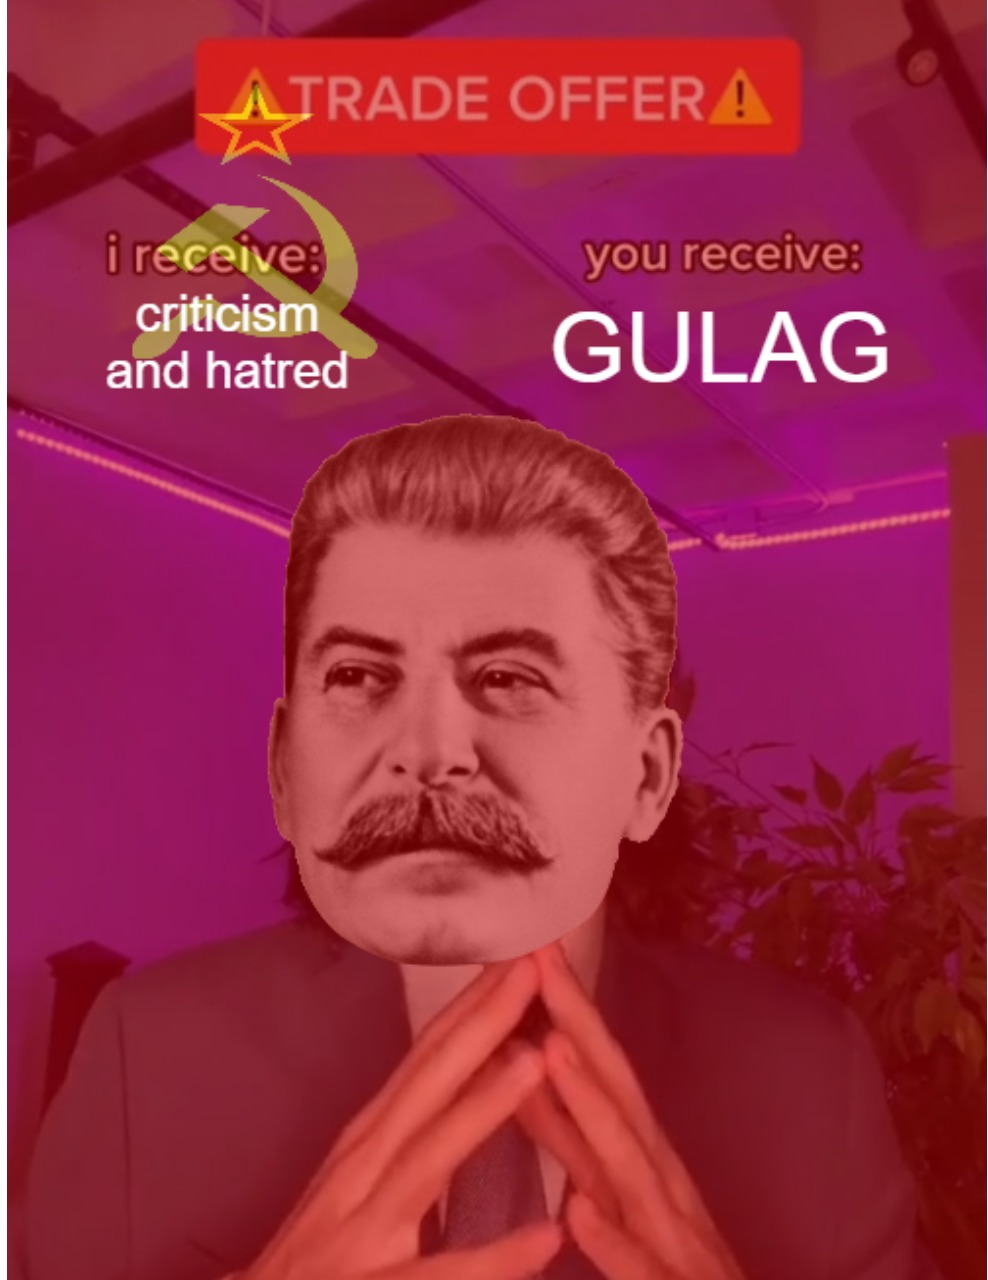 if you downvote this you go to GULAG - meme